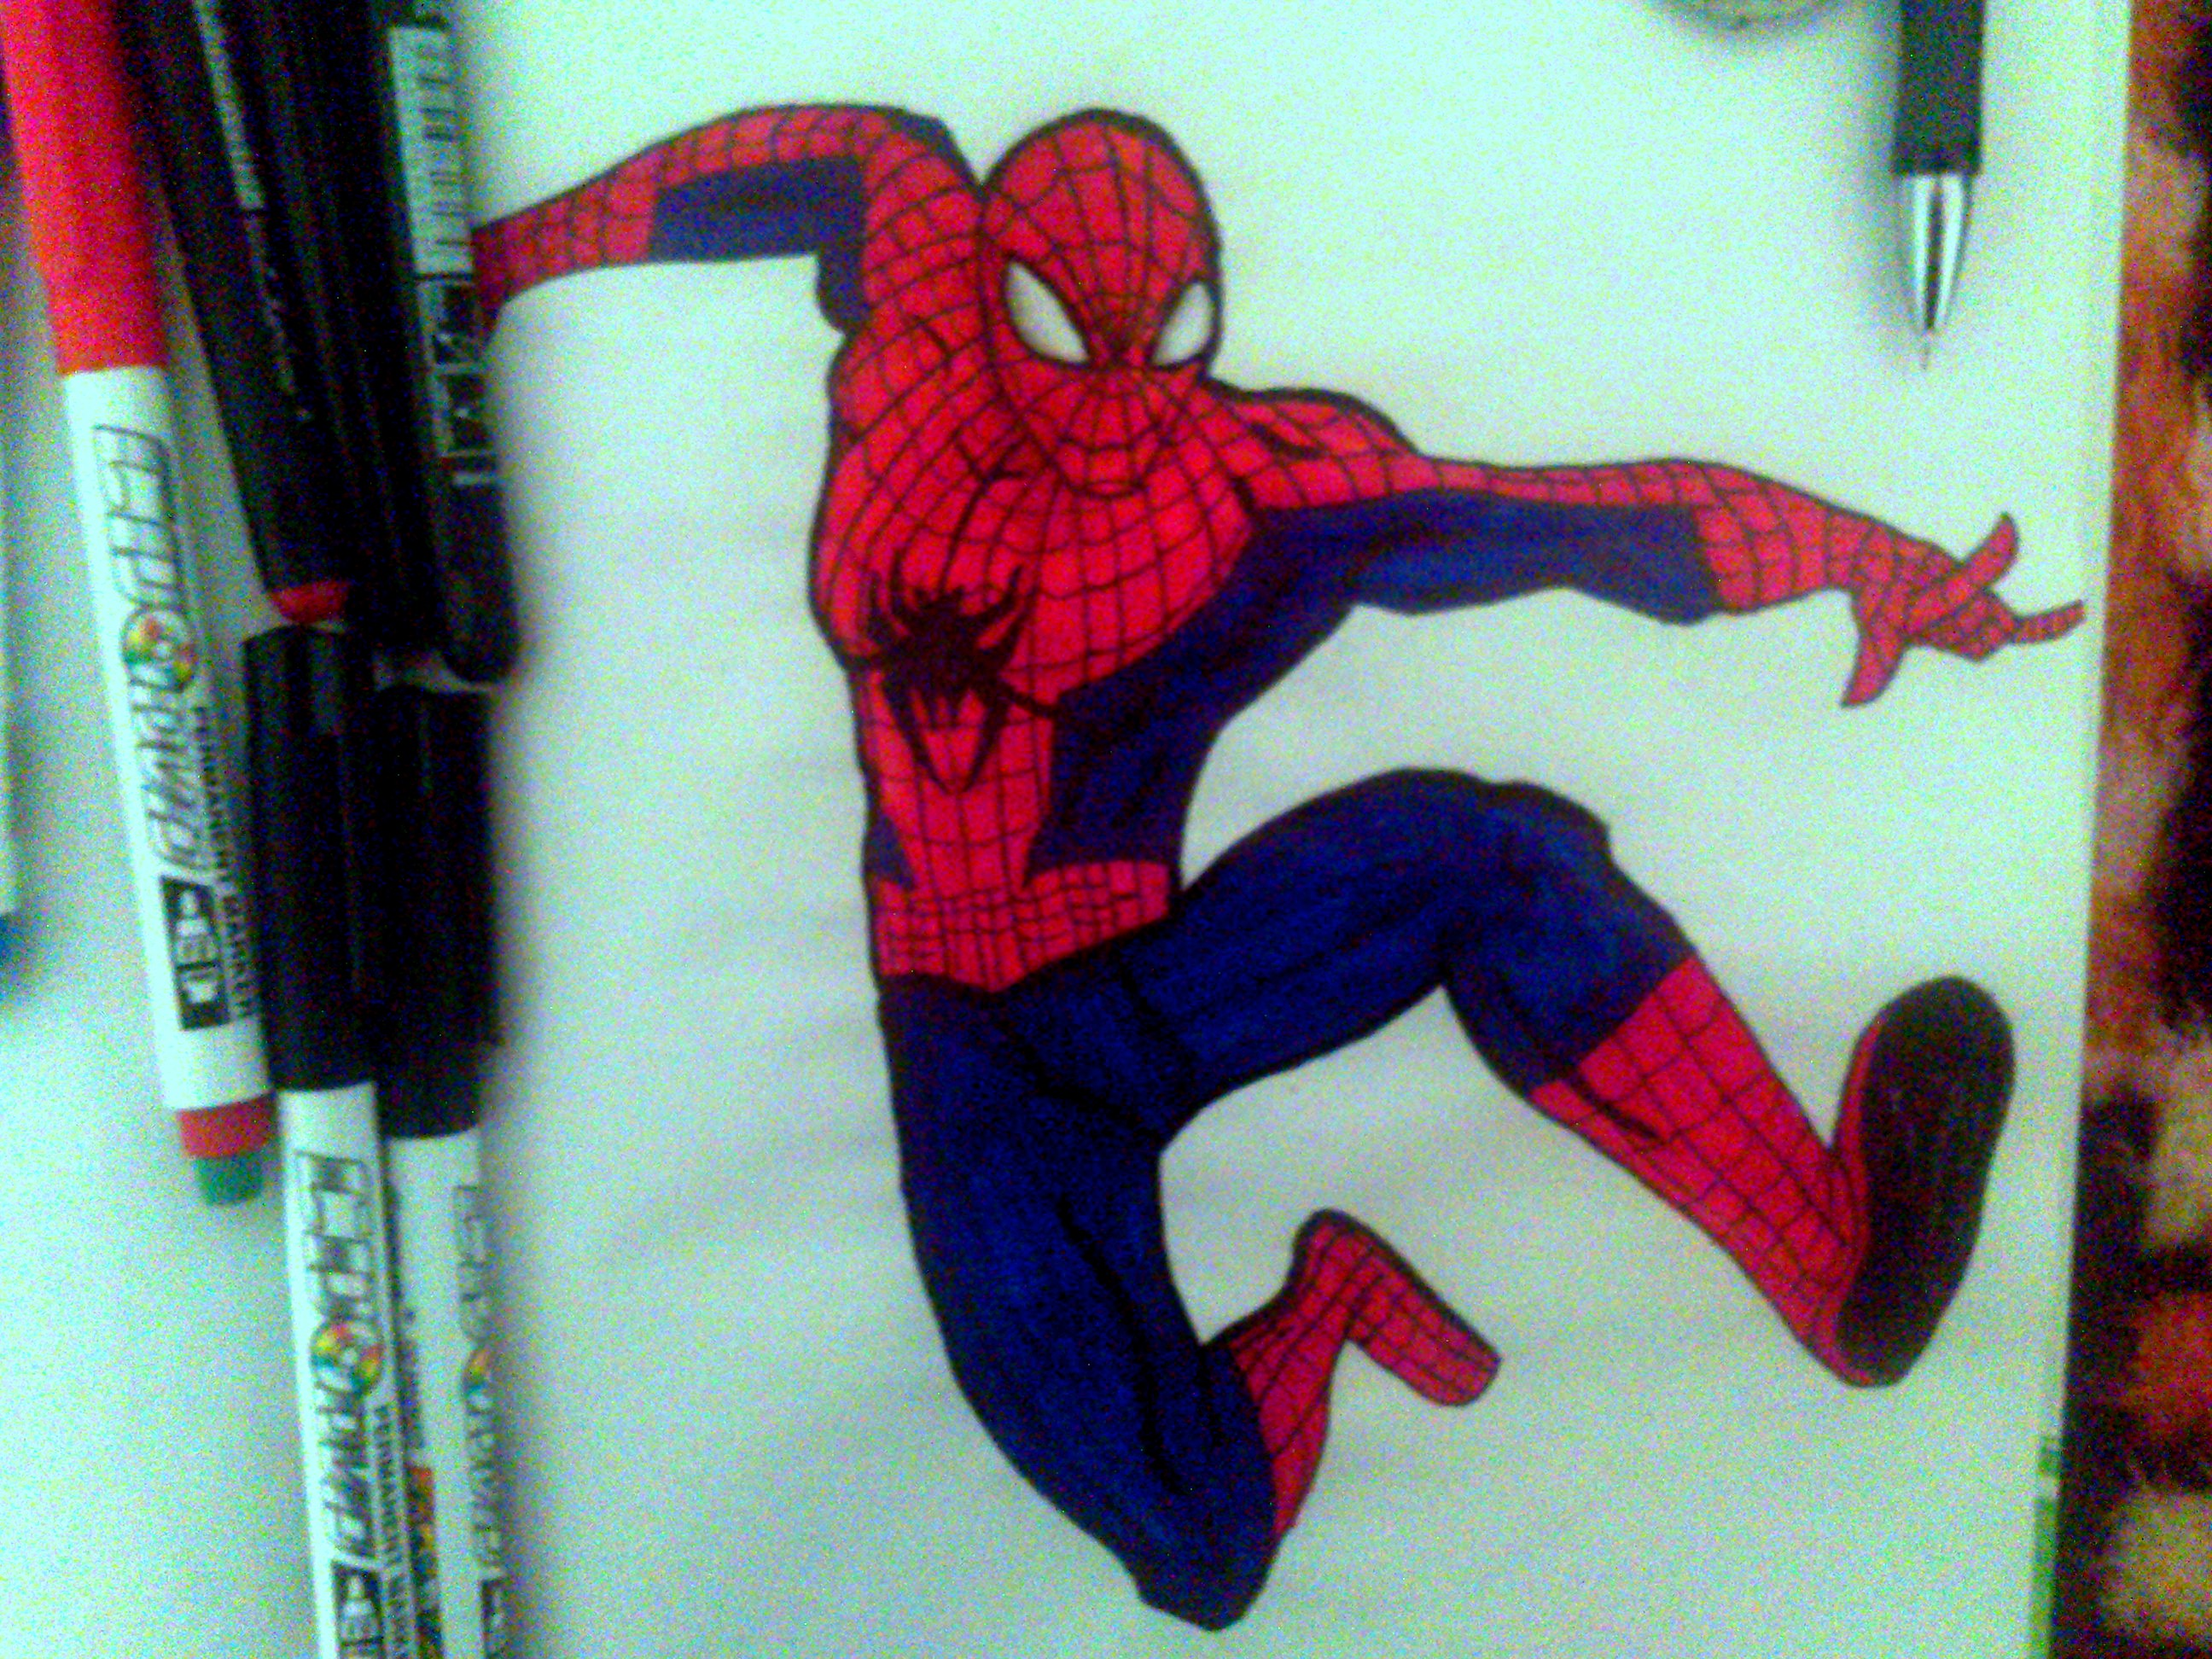 Spiderman,the usual